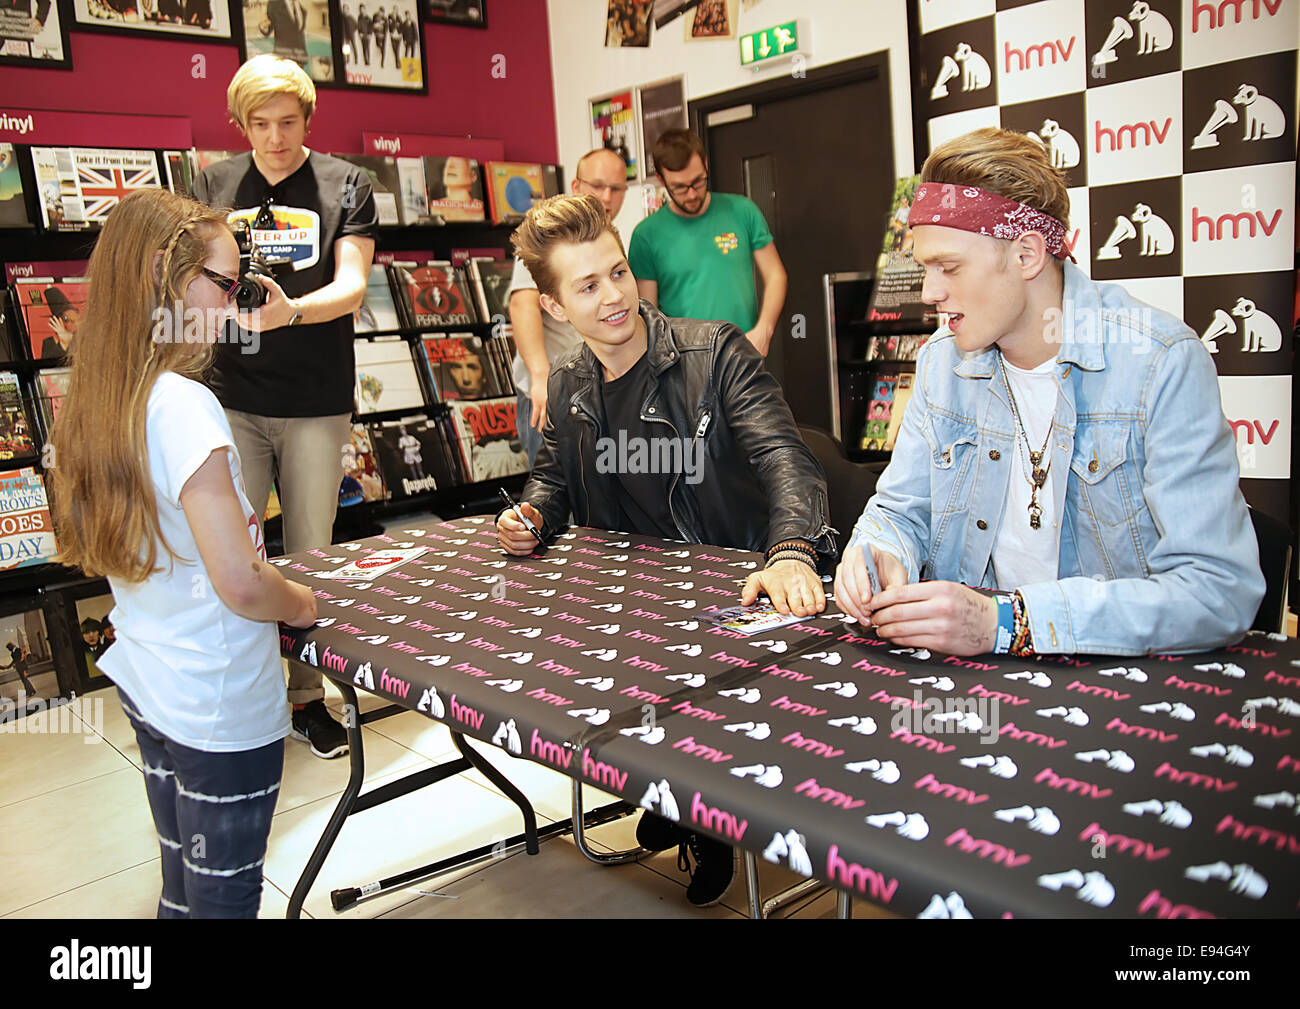 Tristan and james of the vamps meet fans and sign copies of their cd tristan and james of the vamps meet fans and sign copies of their cd meet the vamps at manchester hmv featuring james mcveytristan evansthe vamps m4hsunfo